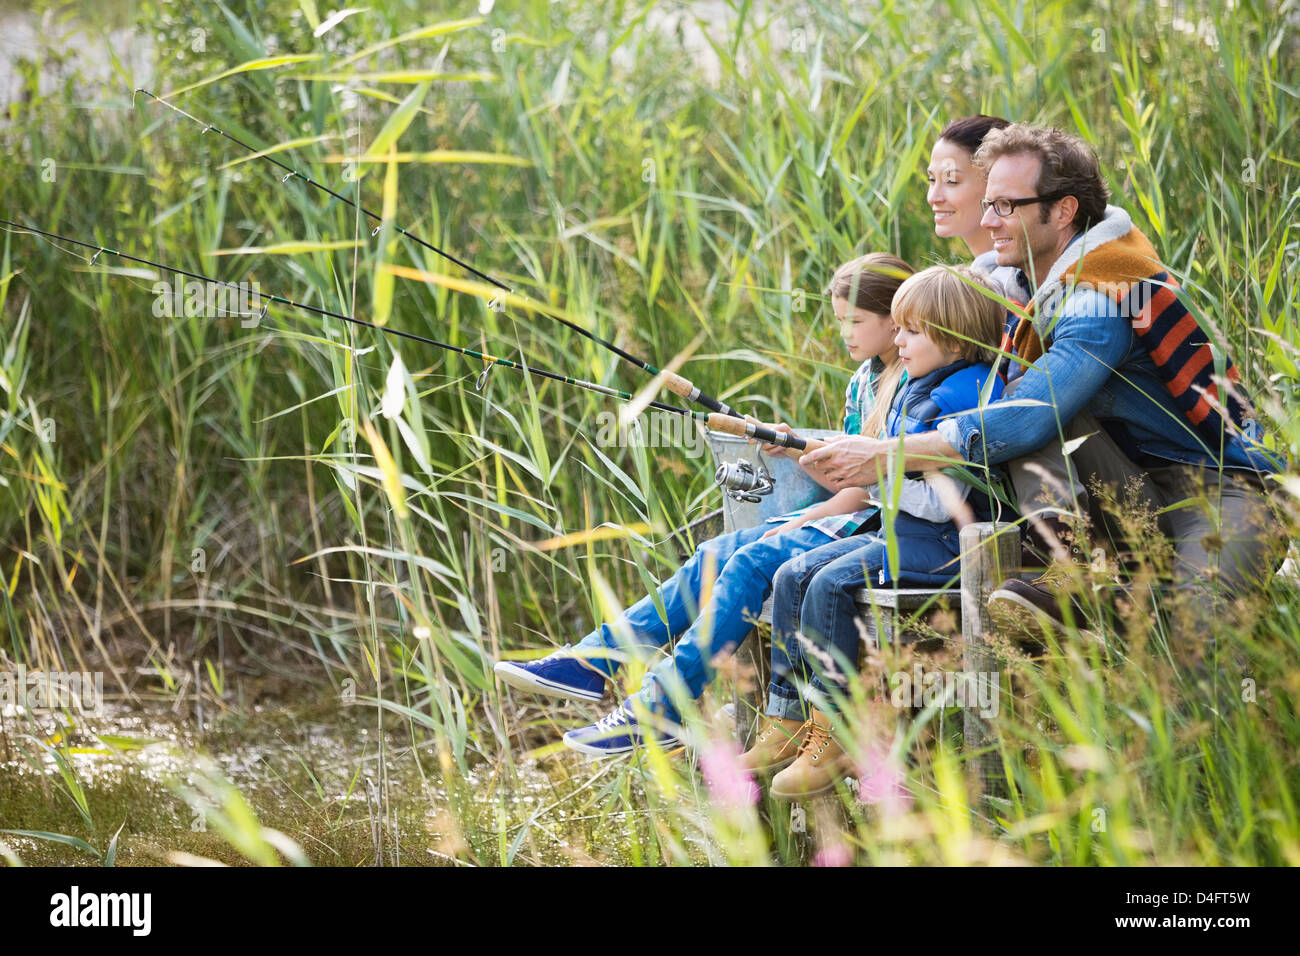 Family fishing together in tall grass - Stock Image